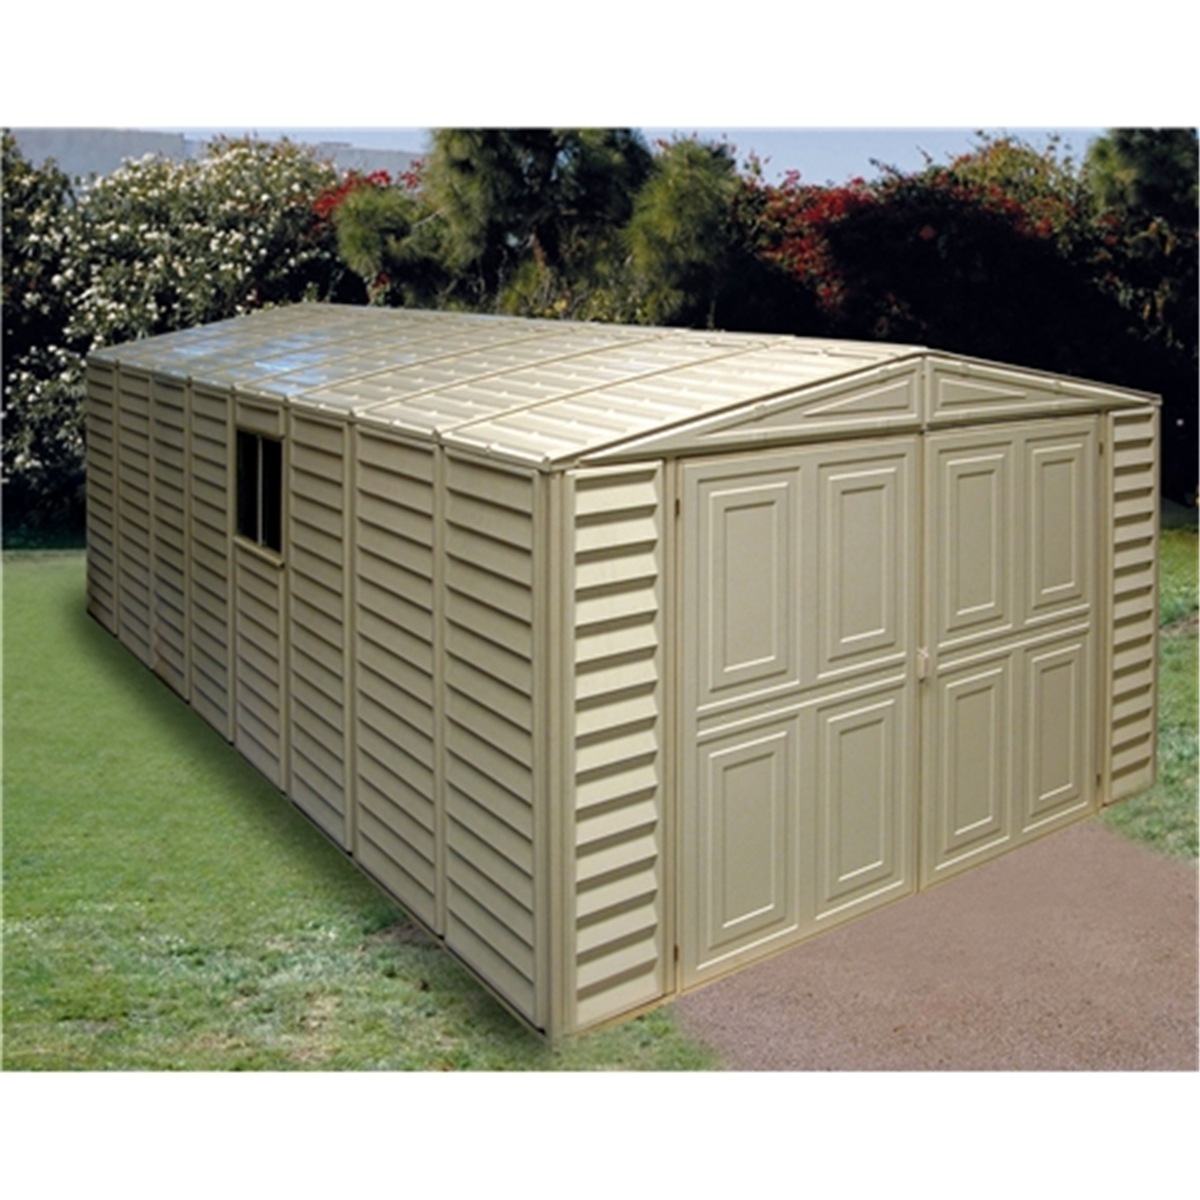 10 X 21 Select Duramax Plastic Pvc Garage With Steel Frame